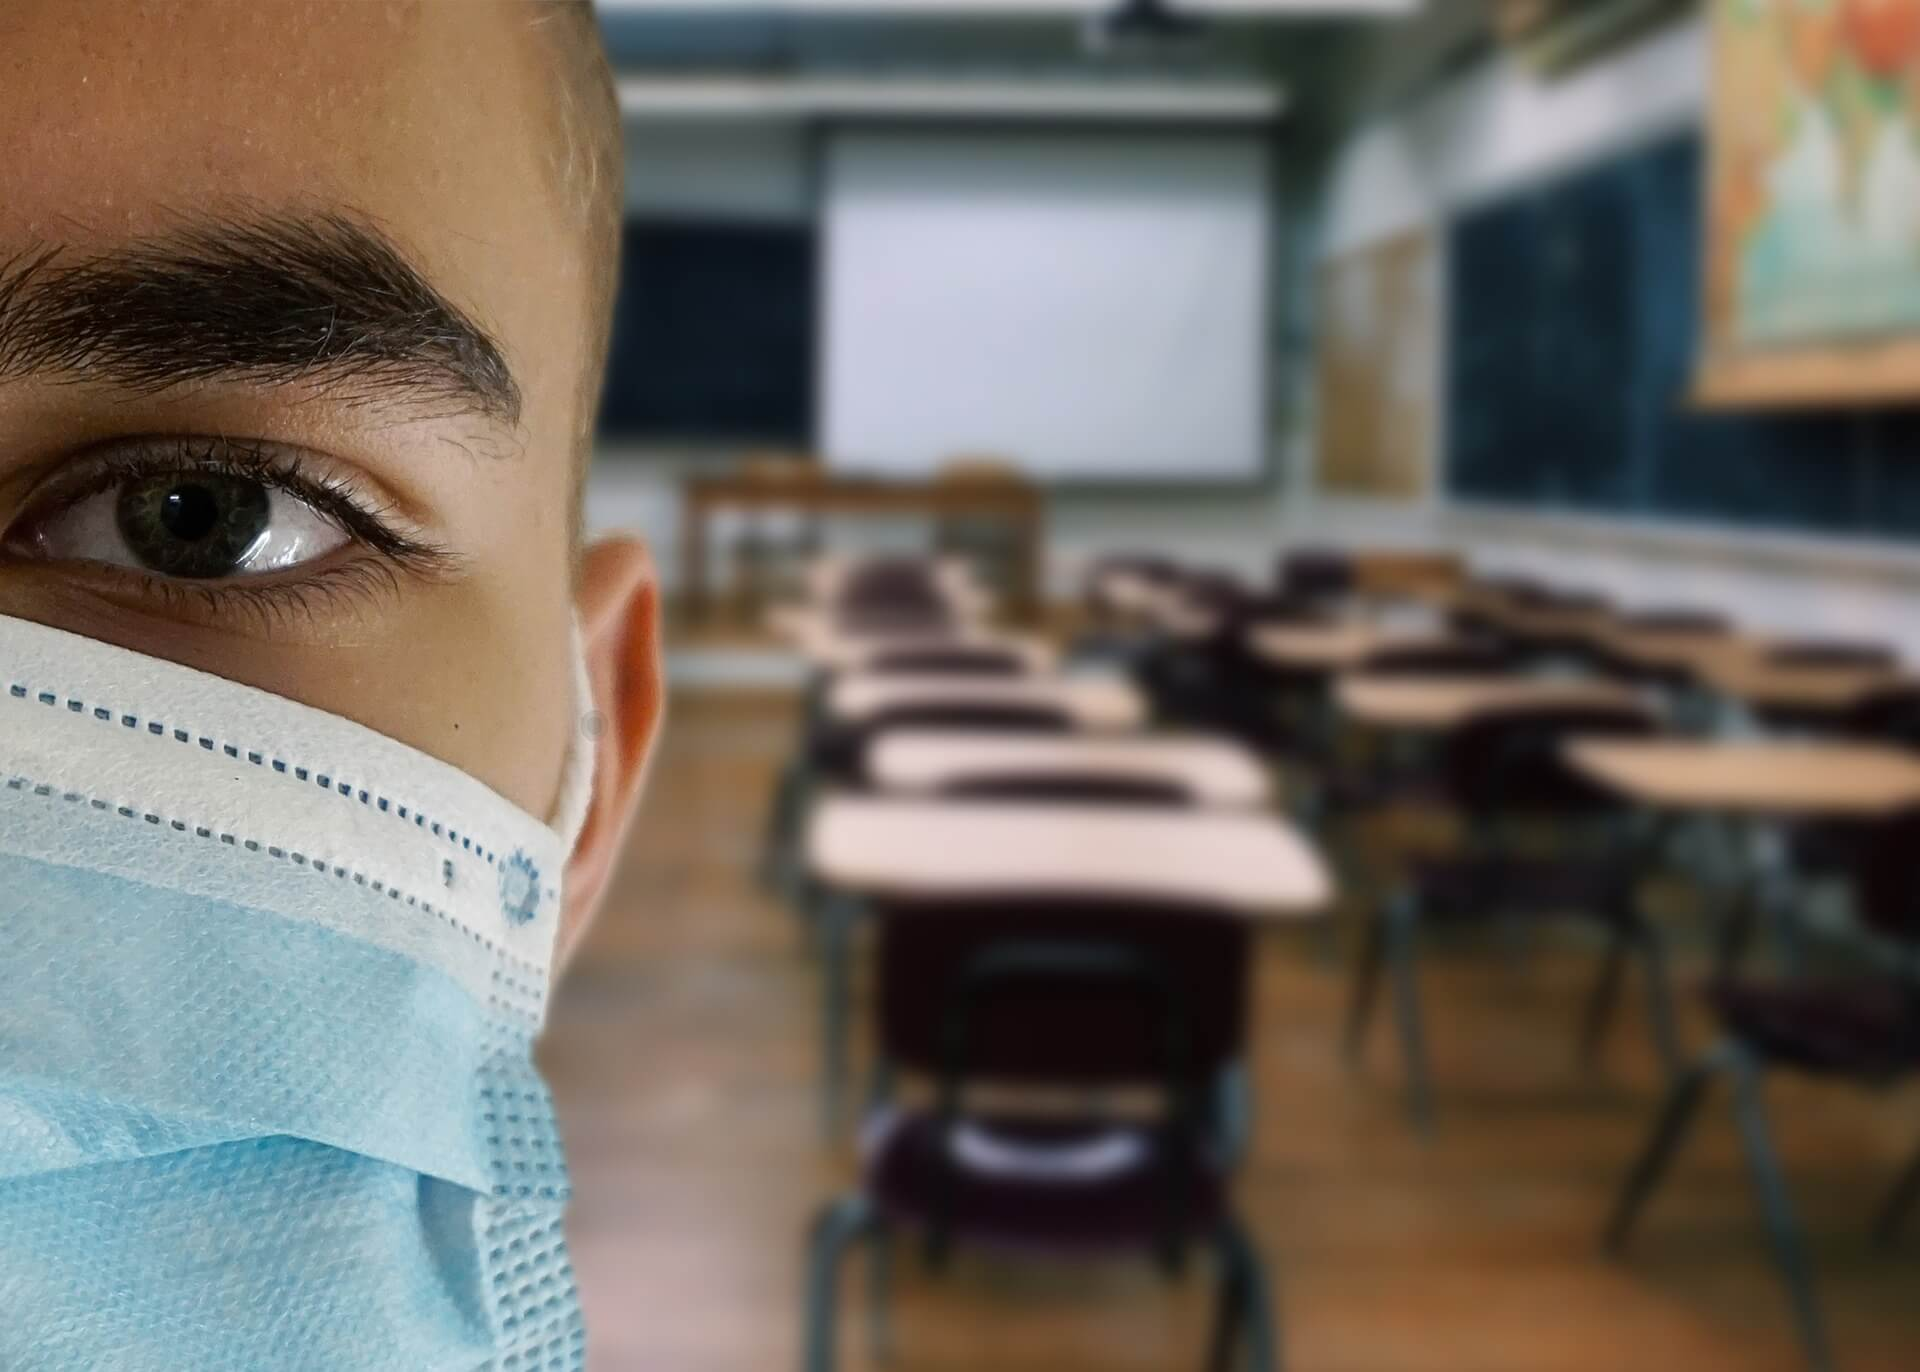 man in an empty classroom wearing a surgical mask like those worn during the coronavirus pandemic